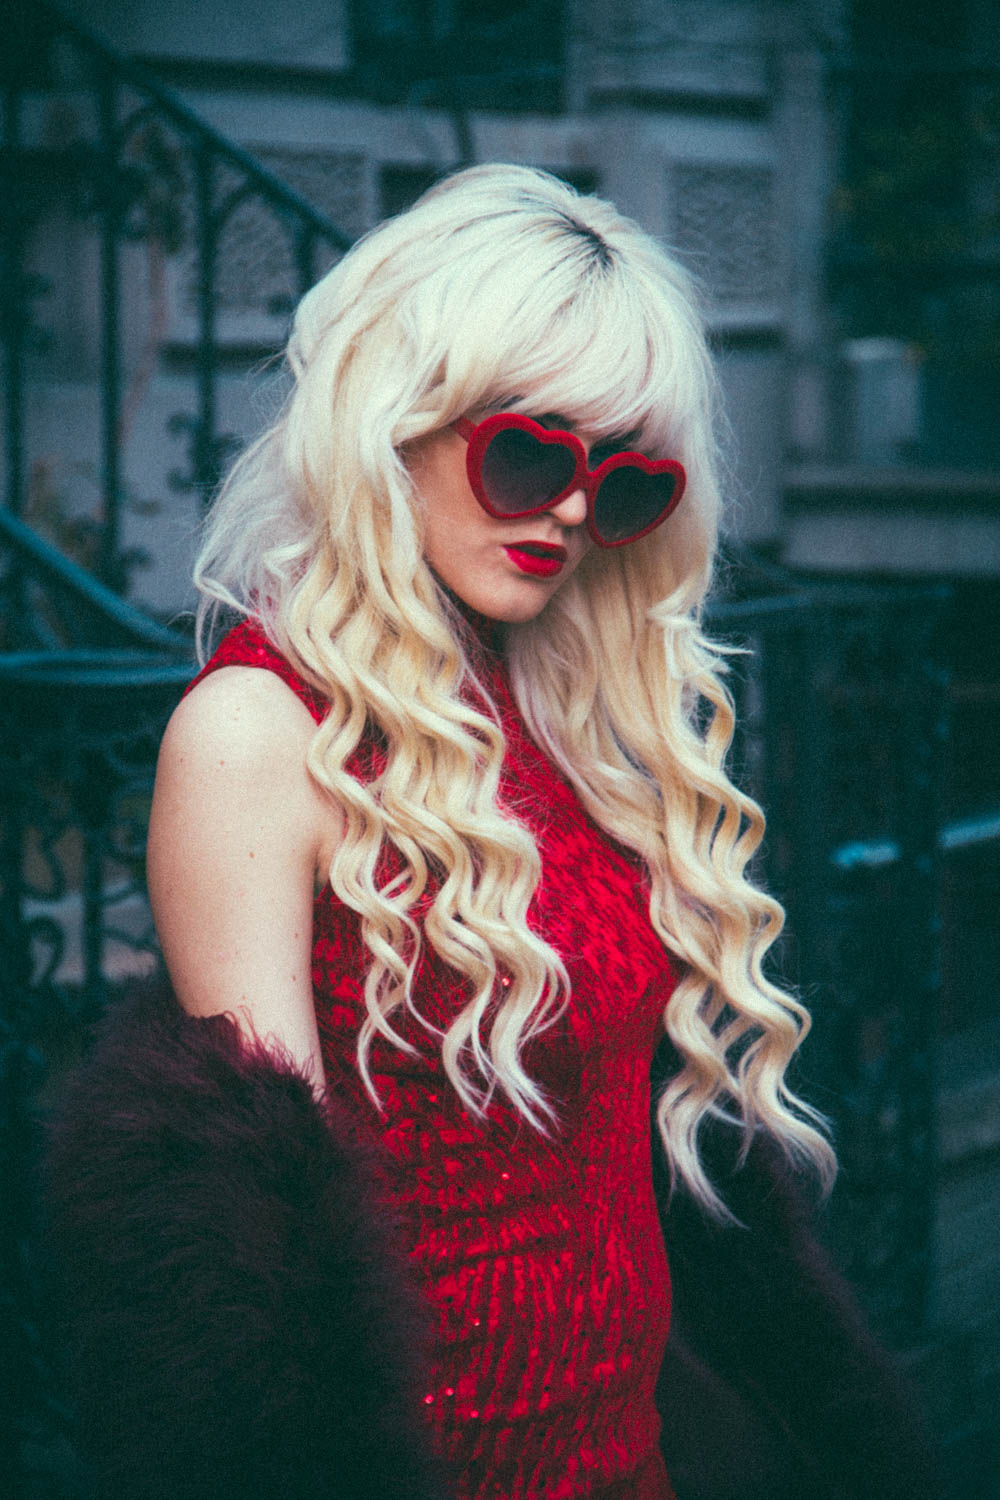 i hate blonde - rachel lynch - rachel - lolita - revolve